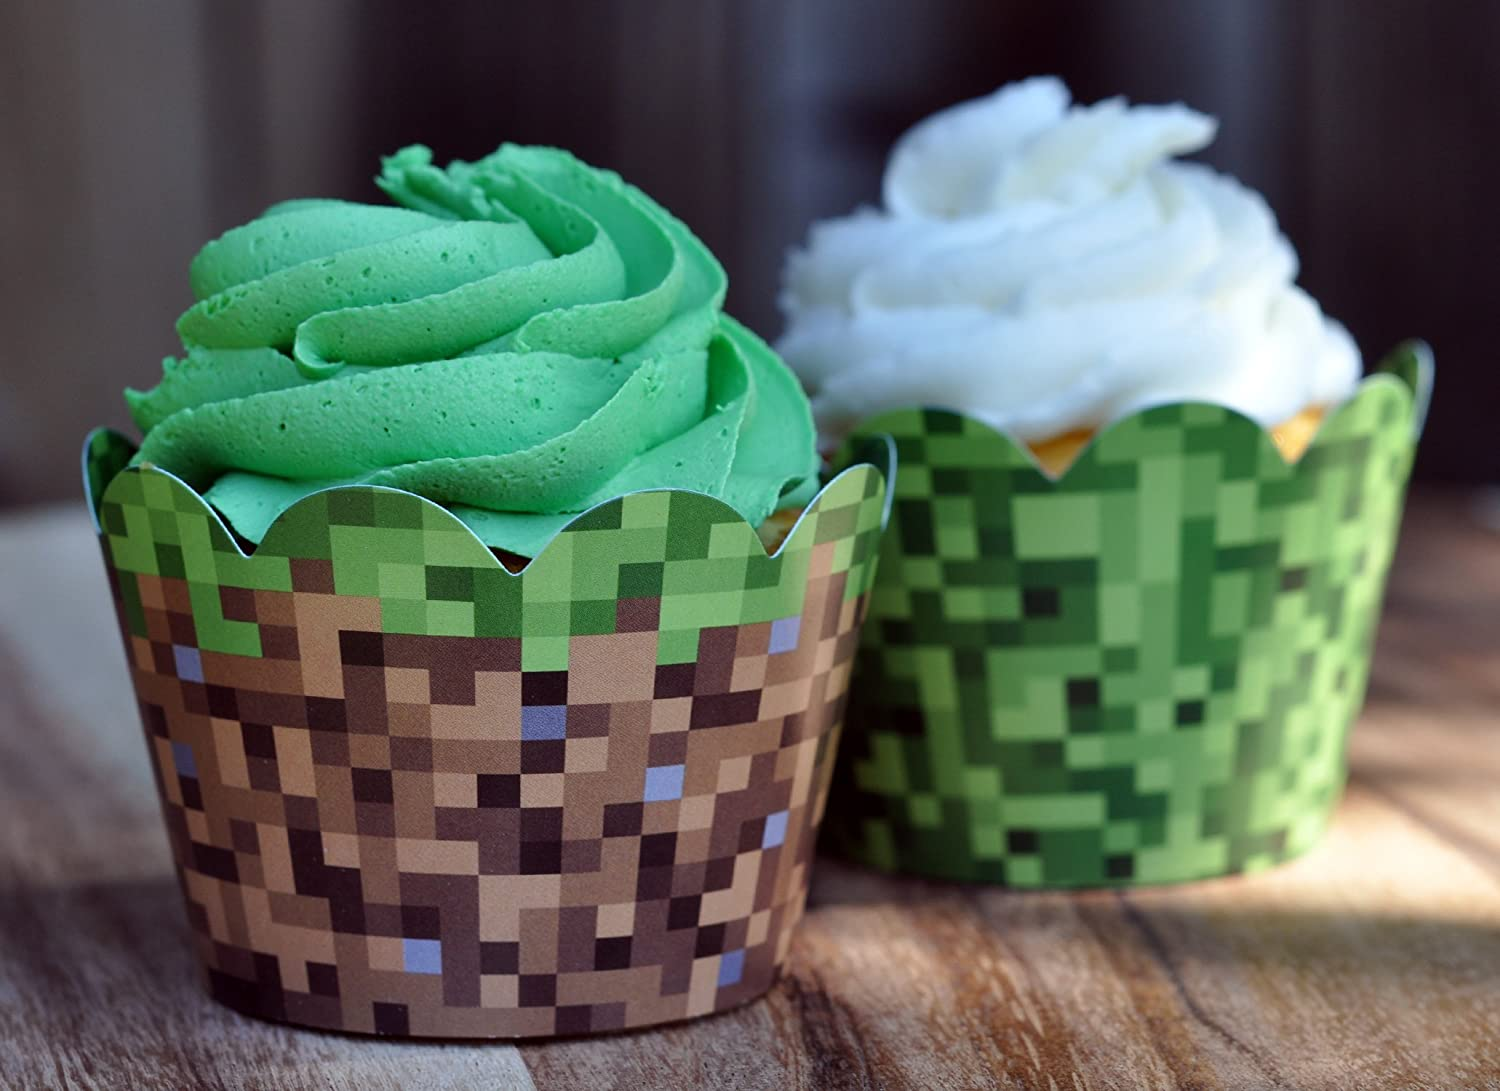 Miner Themed Pixel Grass Cupcake Wrappers For Boys Birthday Parties Vintage 8 Bit Birthday Party Set Of 24 Reversible Engineer Grass And Green Pixel